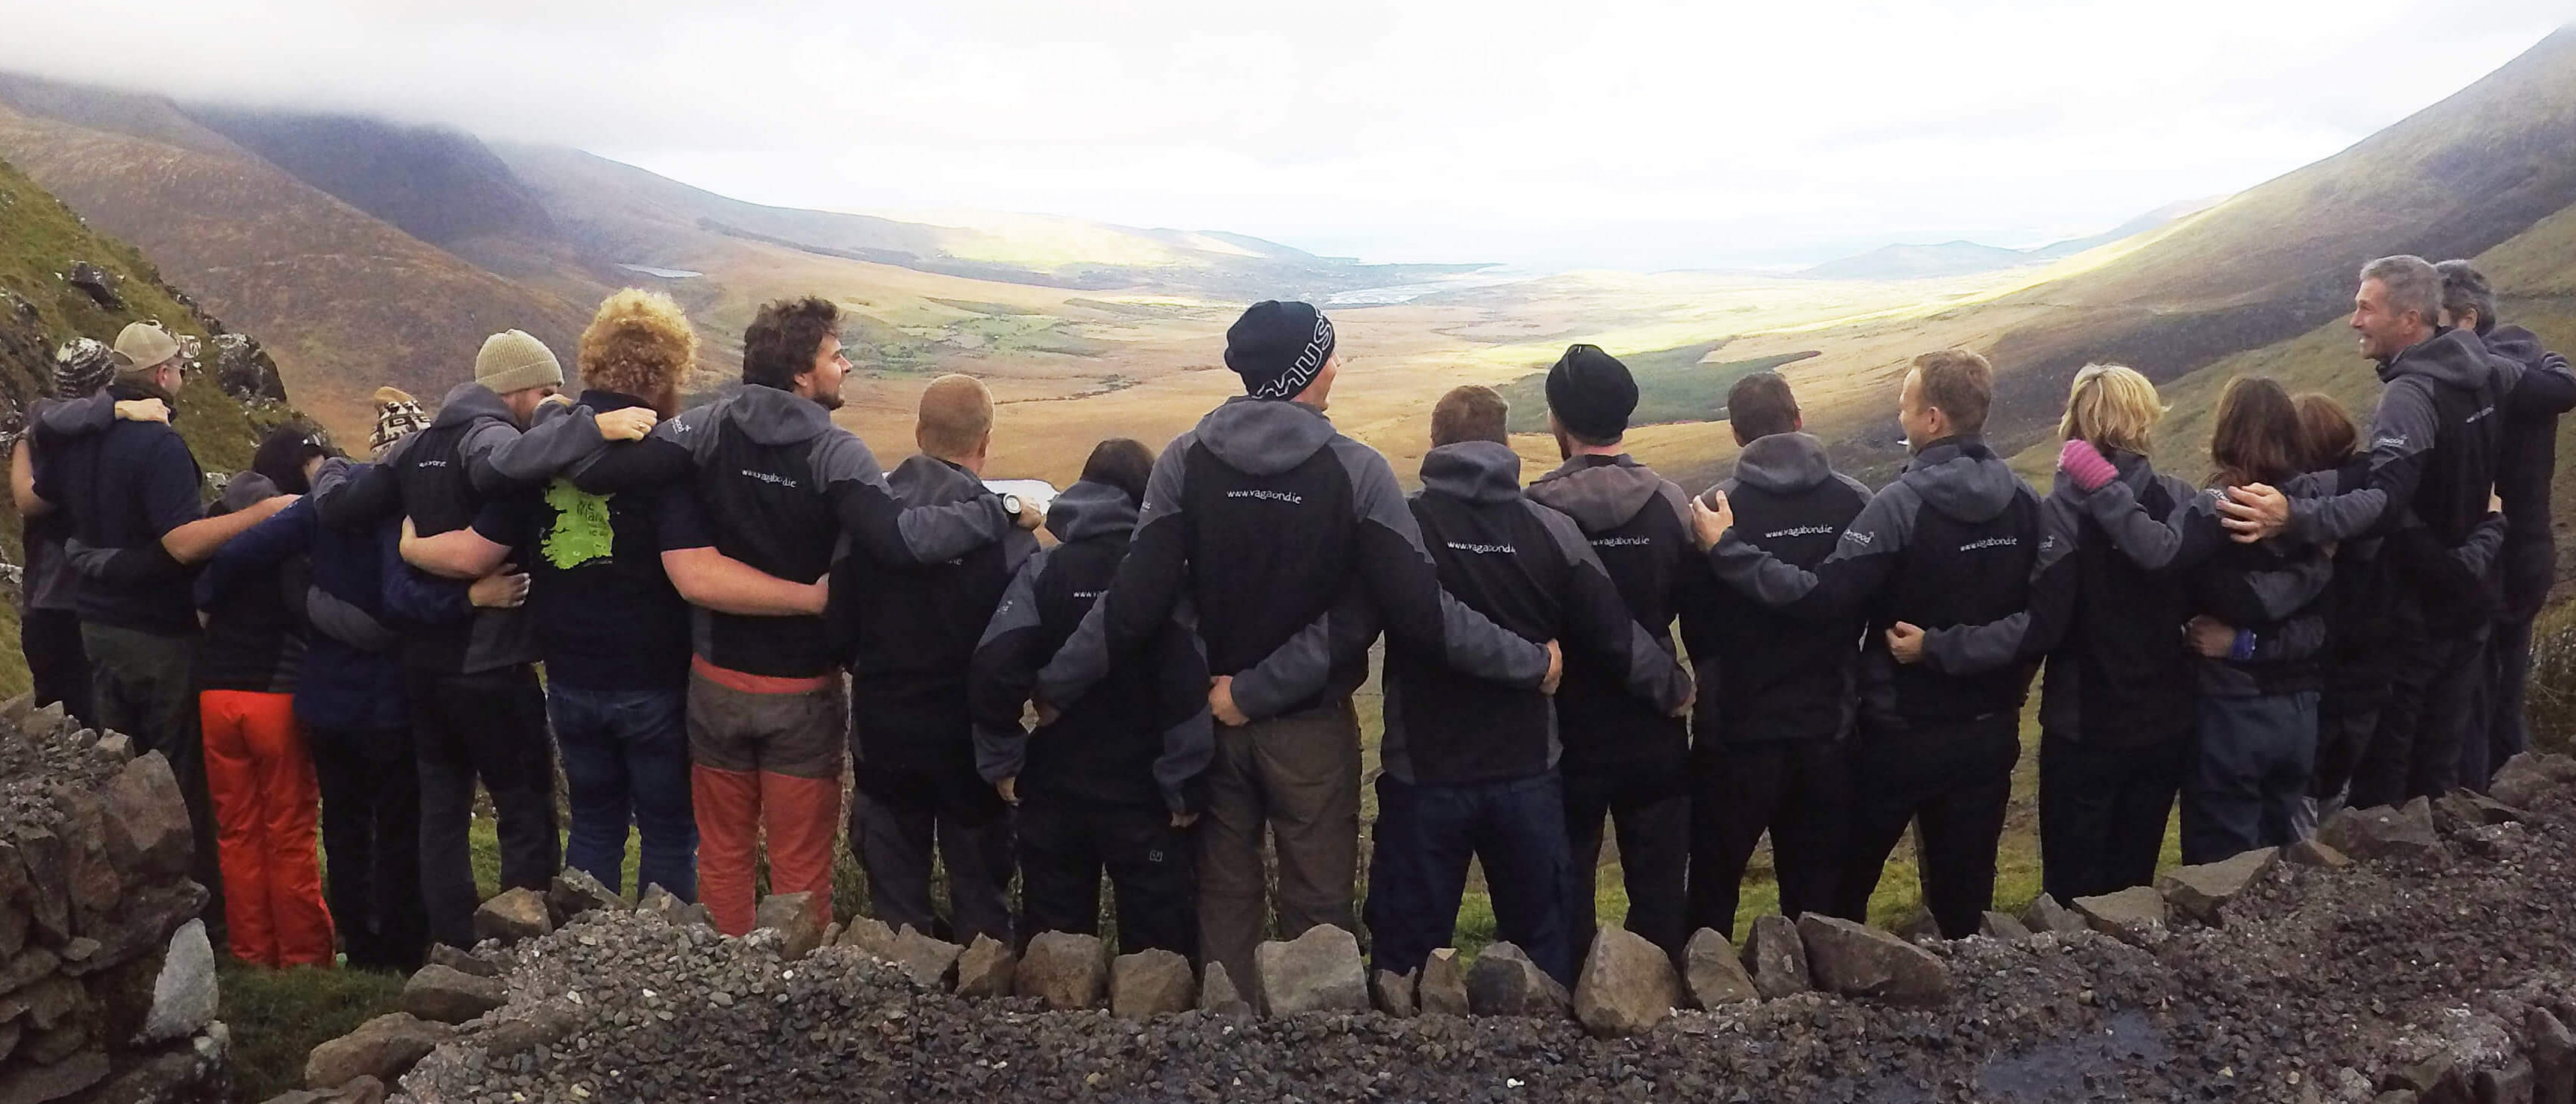 Vagabond tour guides standing on a mountain with their backs to camera